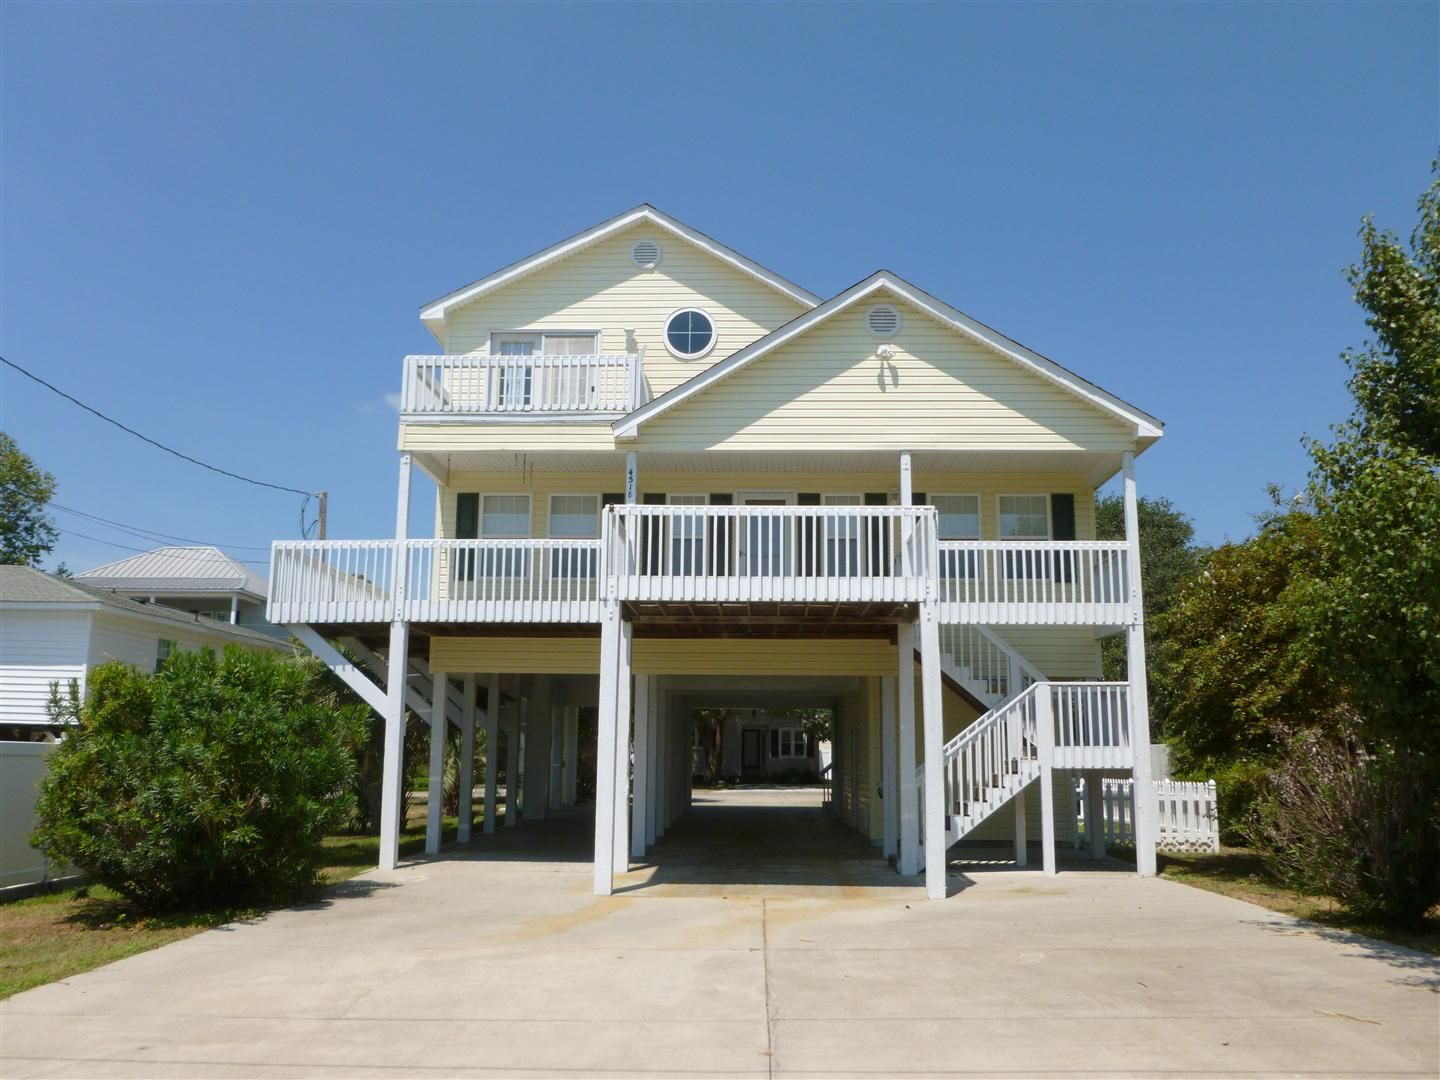 The surf house v north myrtle beach condo rental for Beach cottage house plans